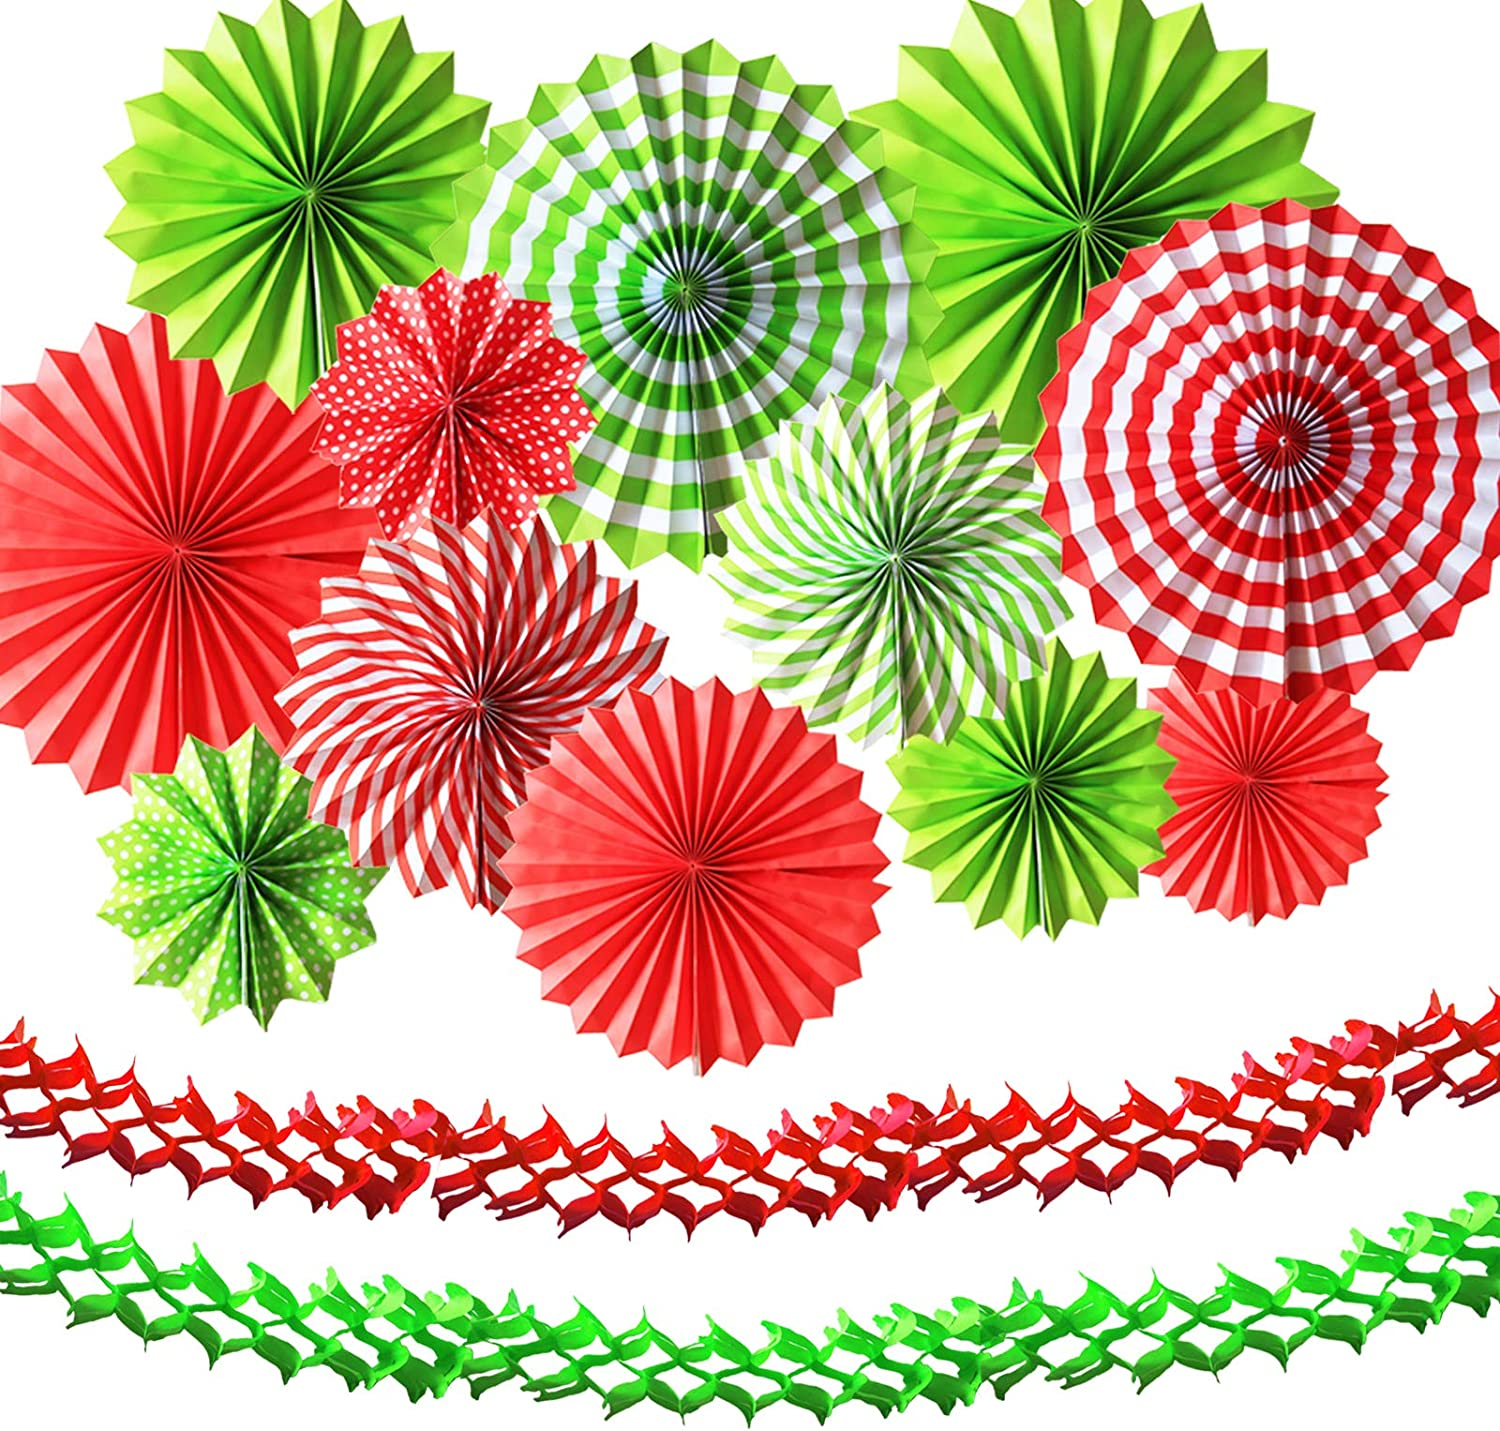 24PCS Christmas Party Decorations Red and Green - 12Pcs Paper Fan and Party Streamers Hanging Decorations for Xmas Holiday Party Decor, Christmas Ugly Sweater Party Decor